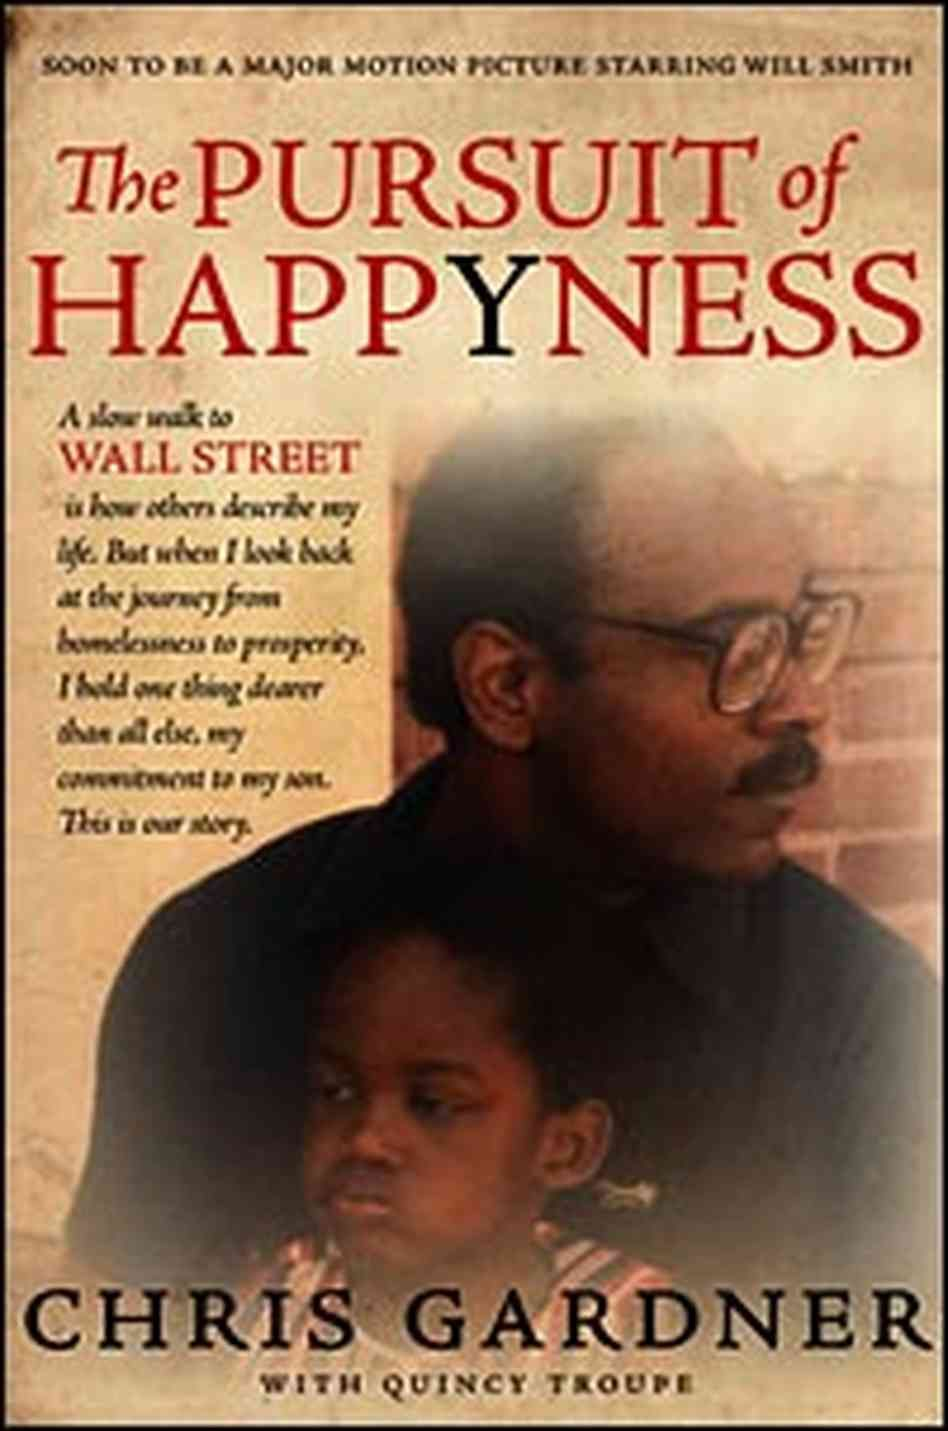 Pin by moody on motivational the pursuit of happyness